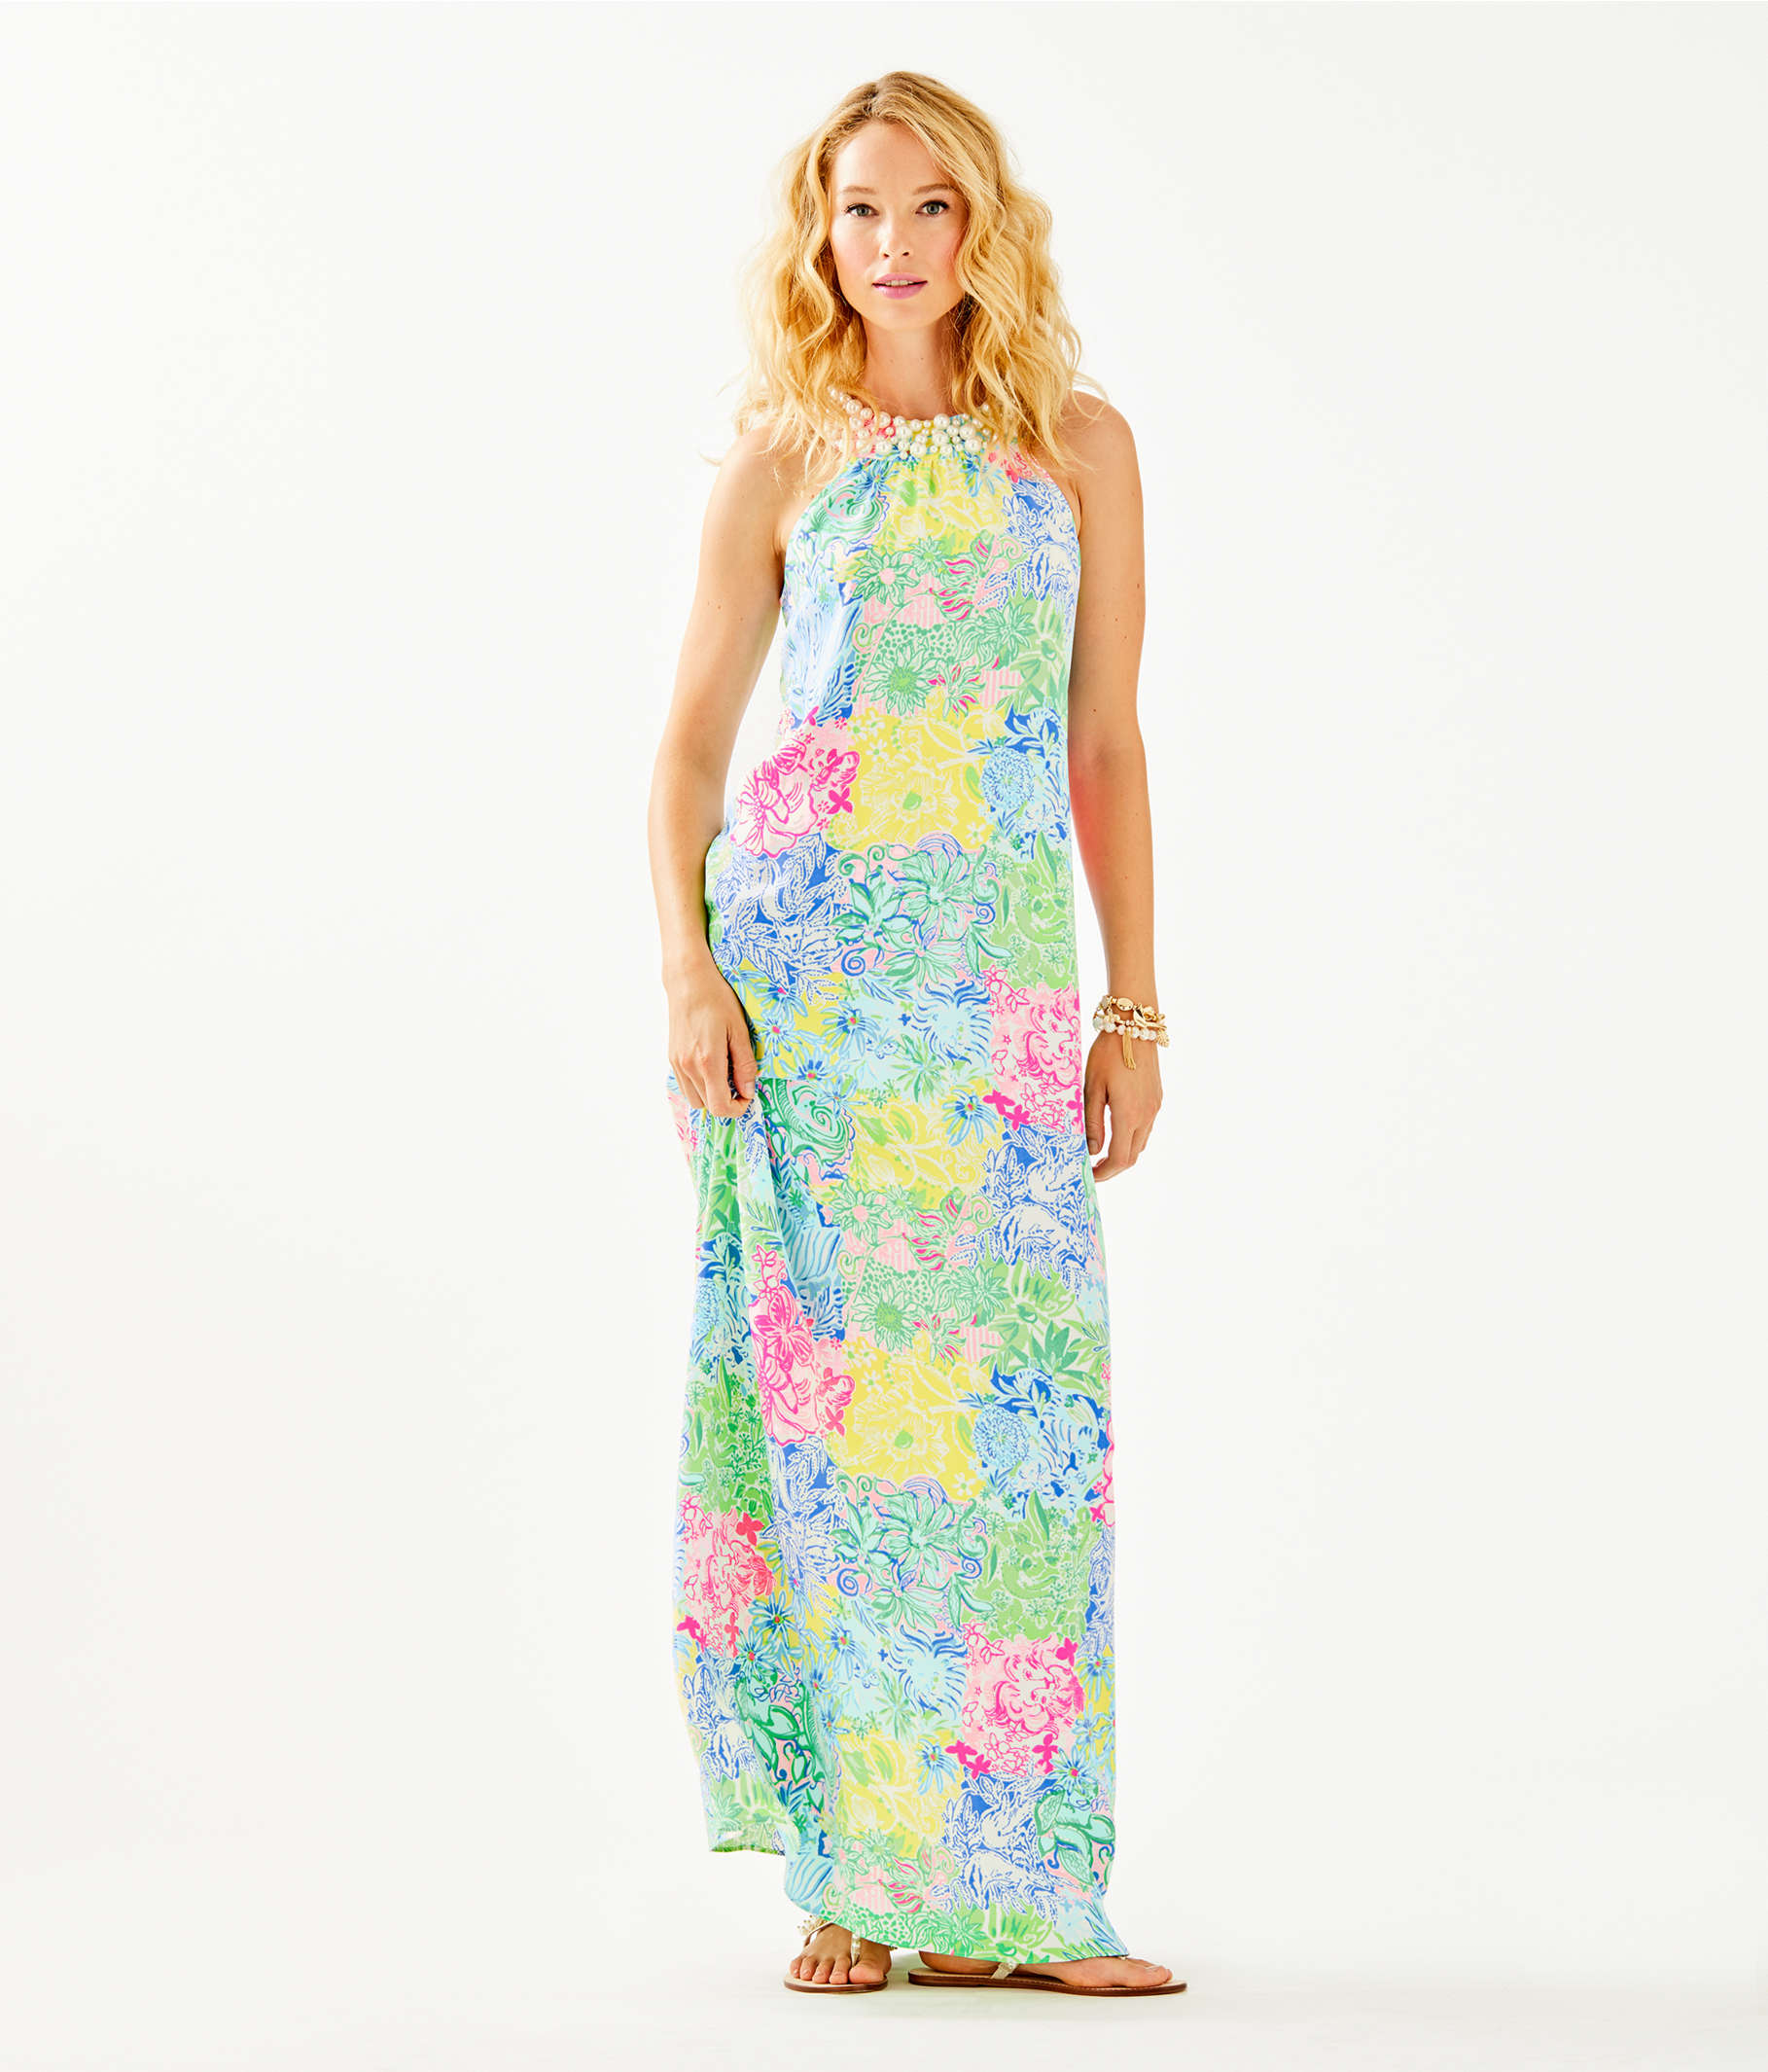 0f0e58ff84a198 ... Shawn Maxi Dress, Multi Cheek To Cheek, large ...